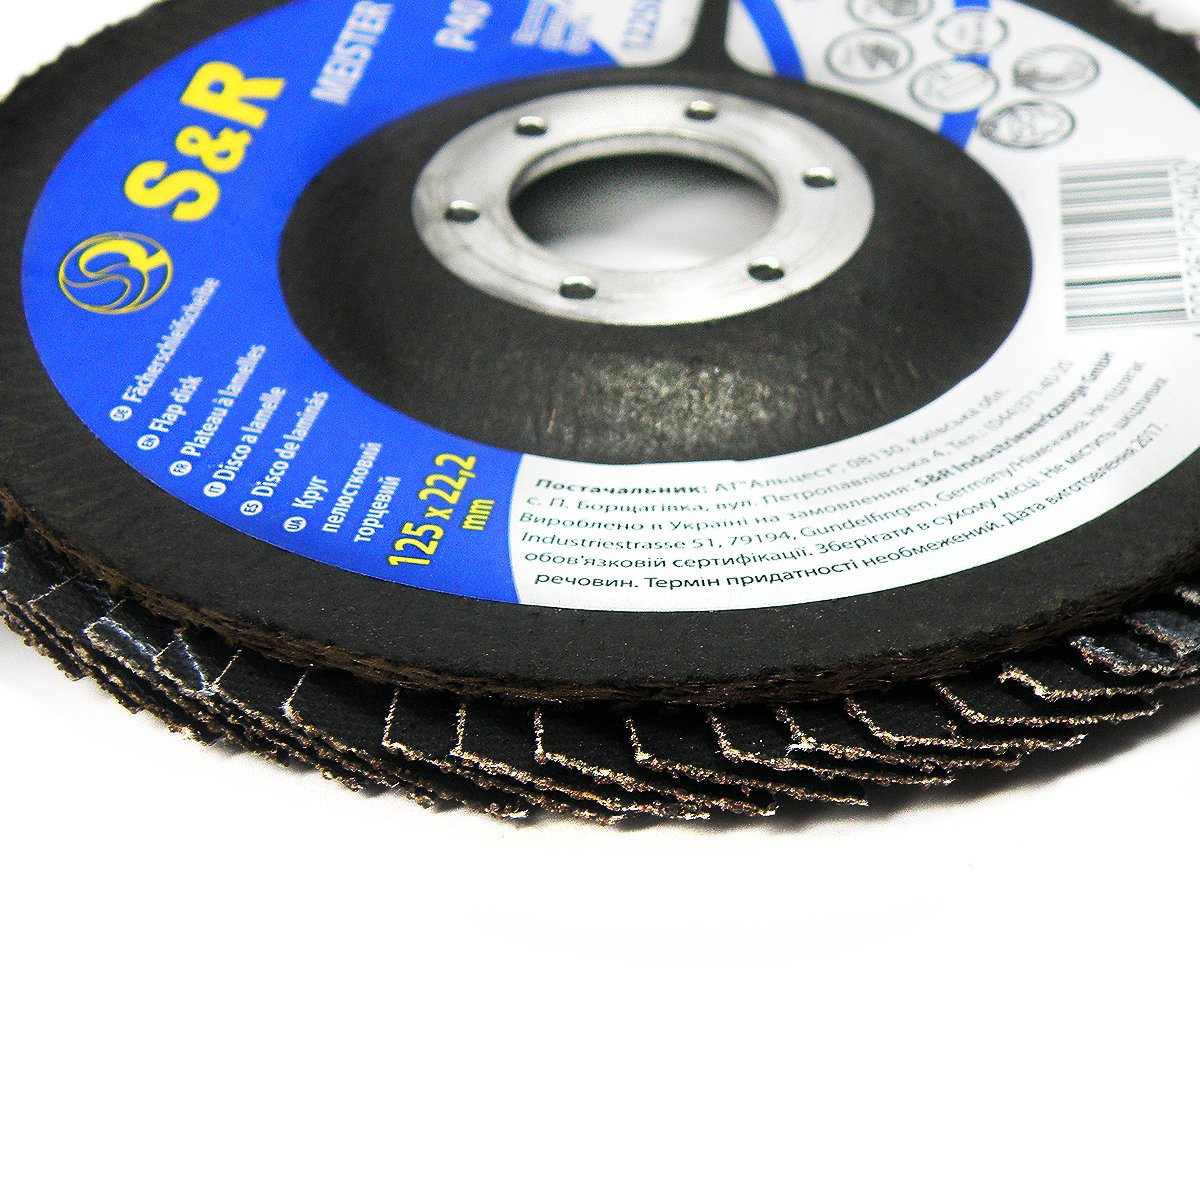 wood T29 for steel S/&R Flap disc// Flap grinding disc125 mm x 22,23 mm Set 5 pieces for angle grinder grain size 100